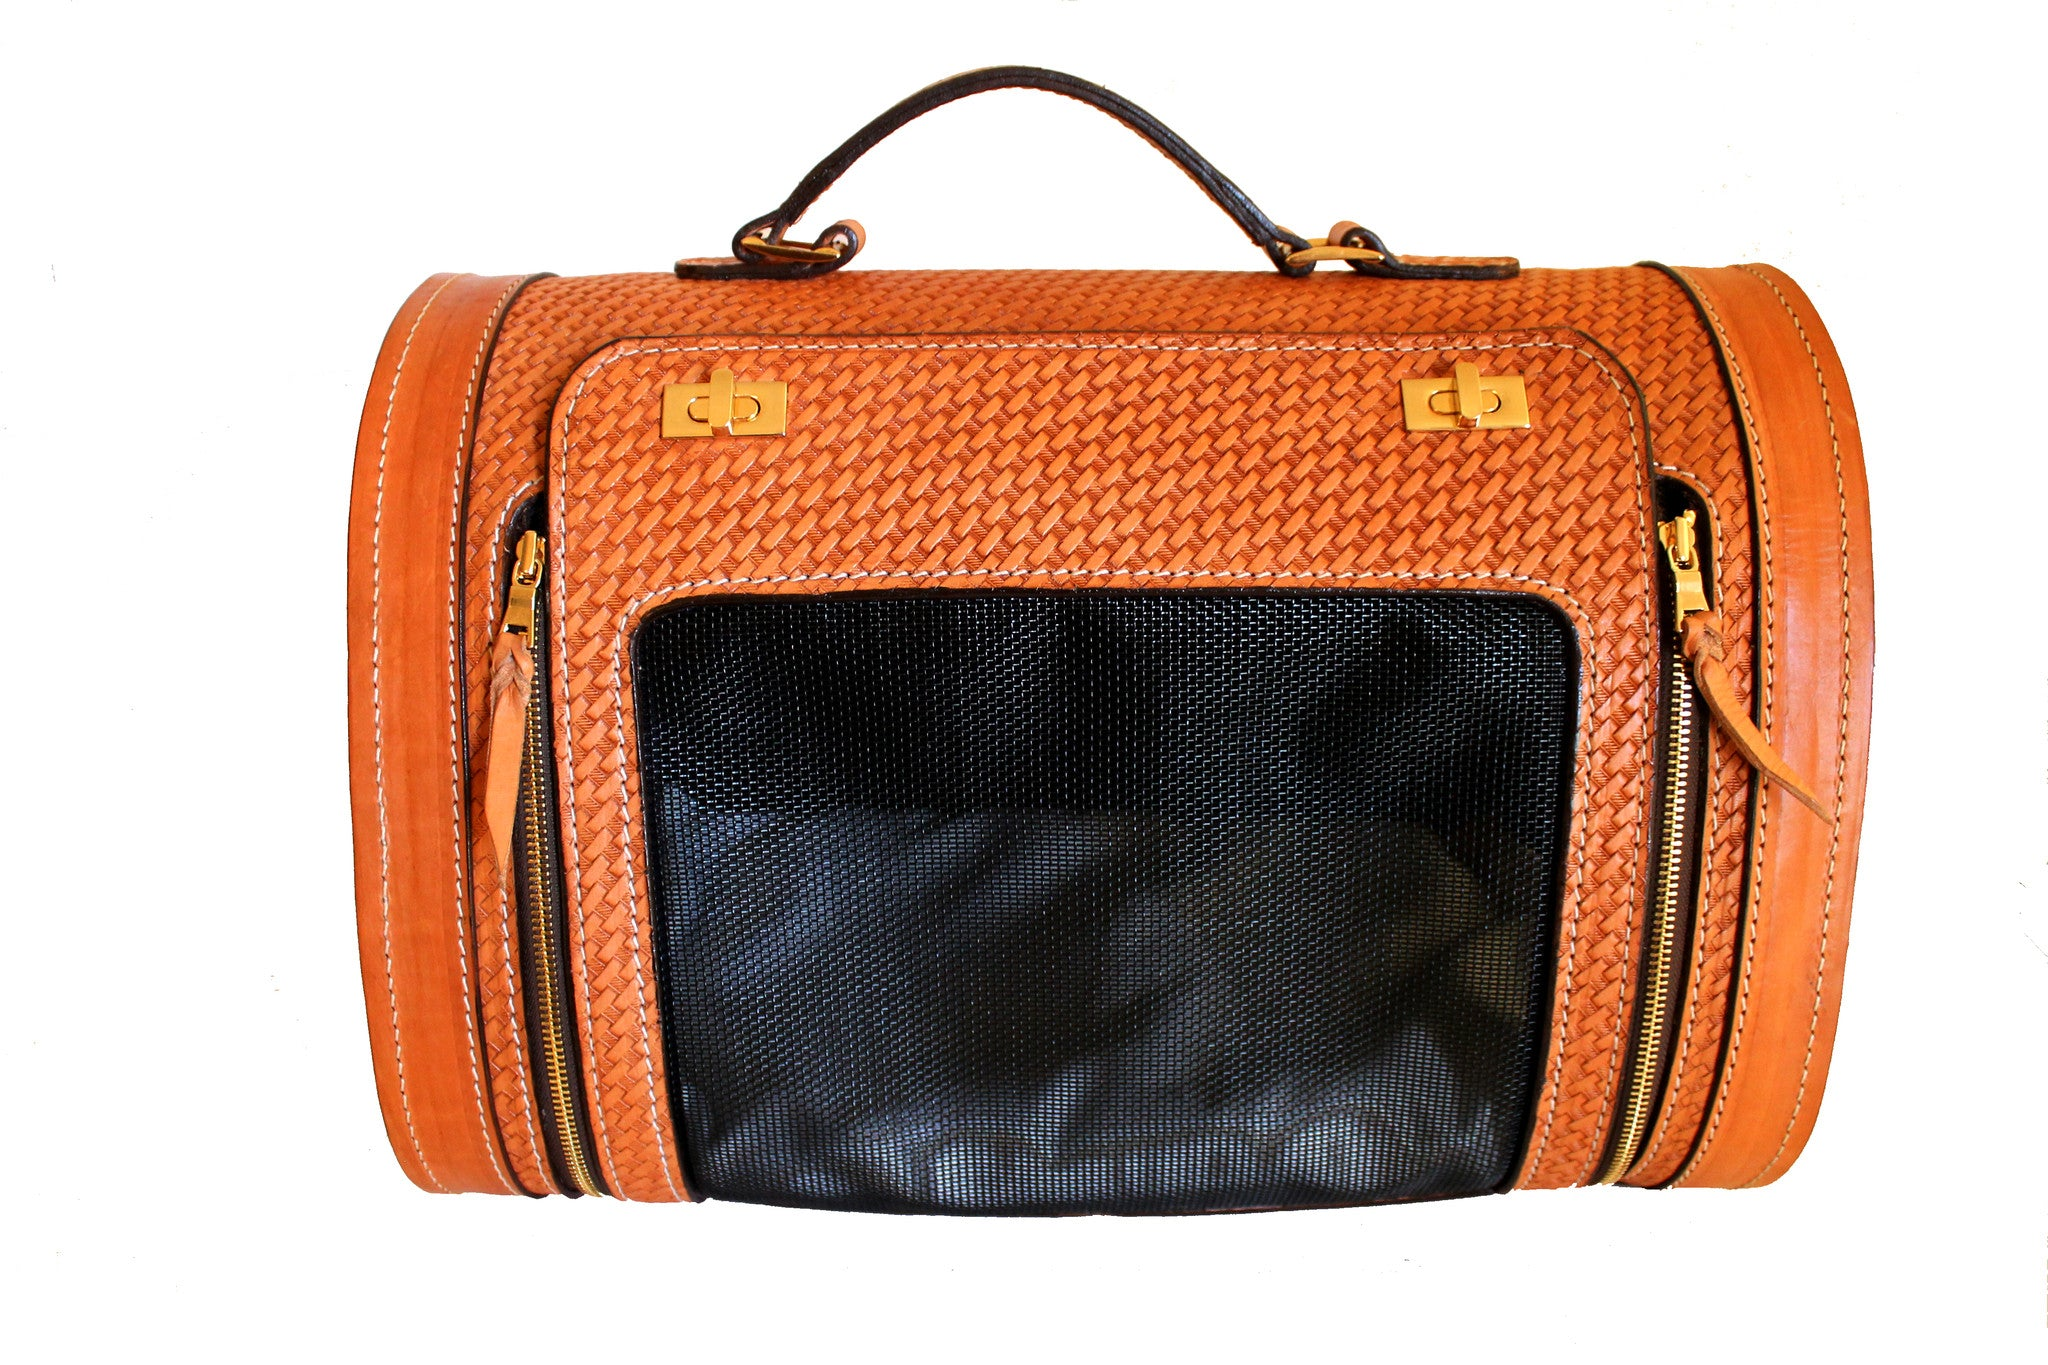 Tan Woven Leather Pet Carrier